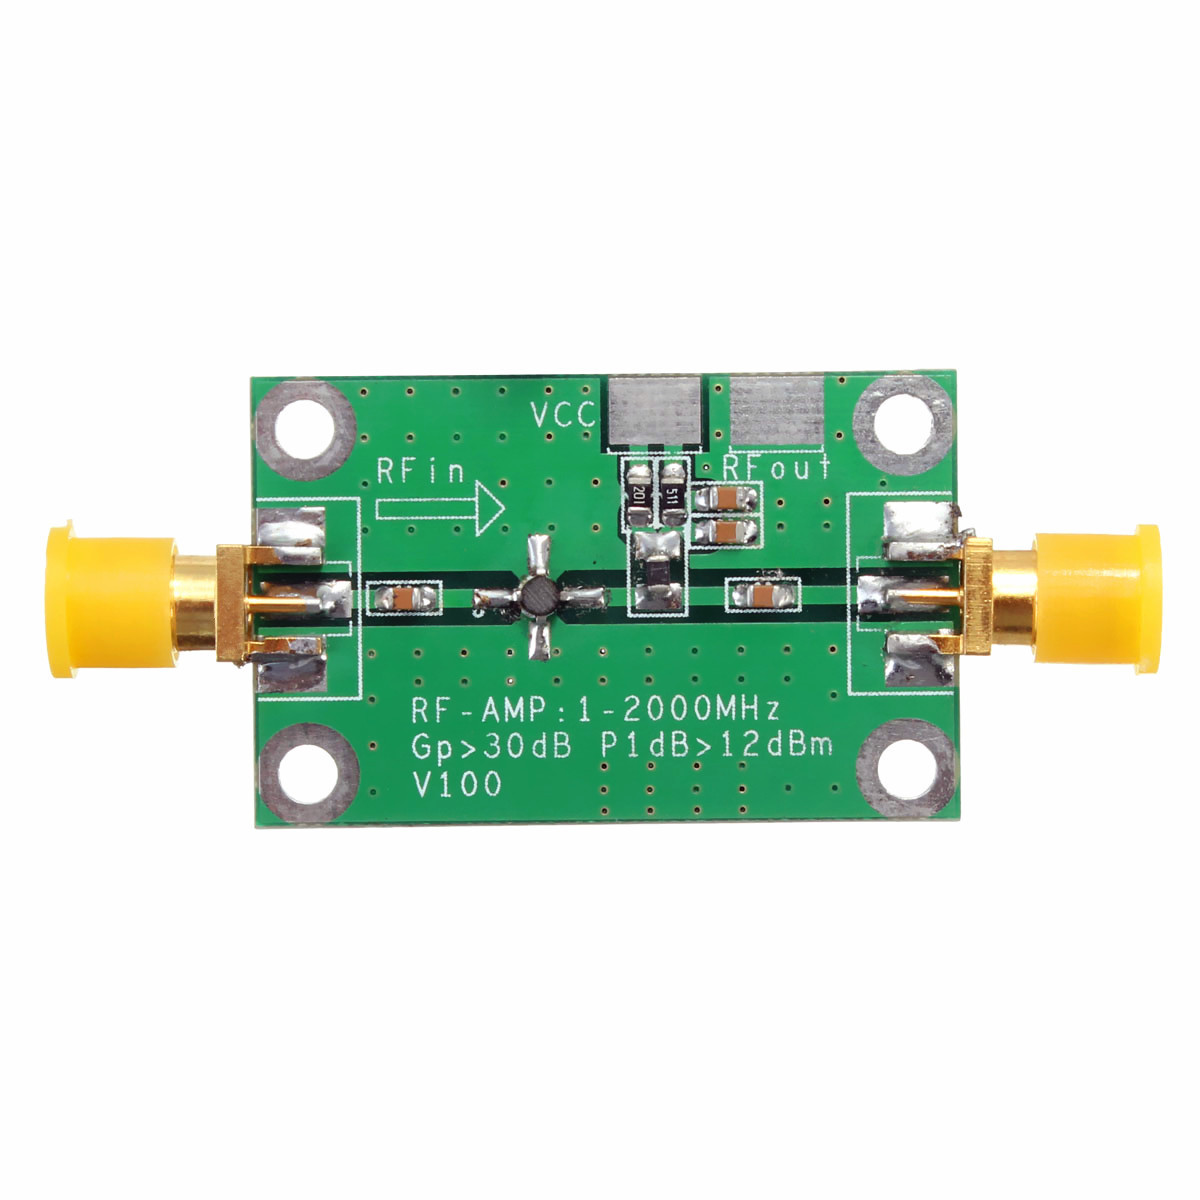 In Leory Ultra-high Frequency 1-2000mhz 2ghz 30db Rf Amplifier Board Broadband Gain Amplification Low Noise Module For Vhfvhf/uhf Novel Design;